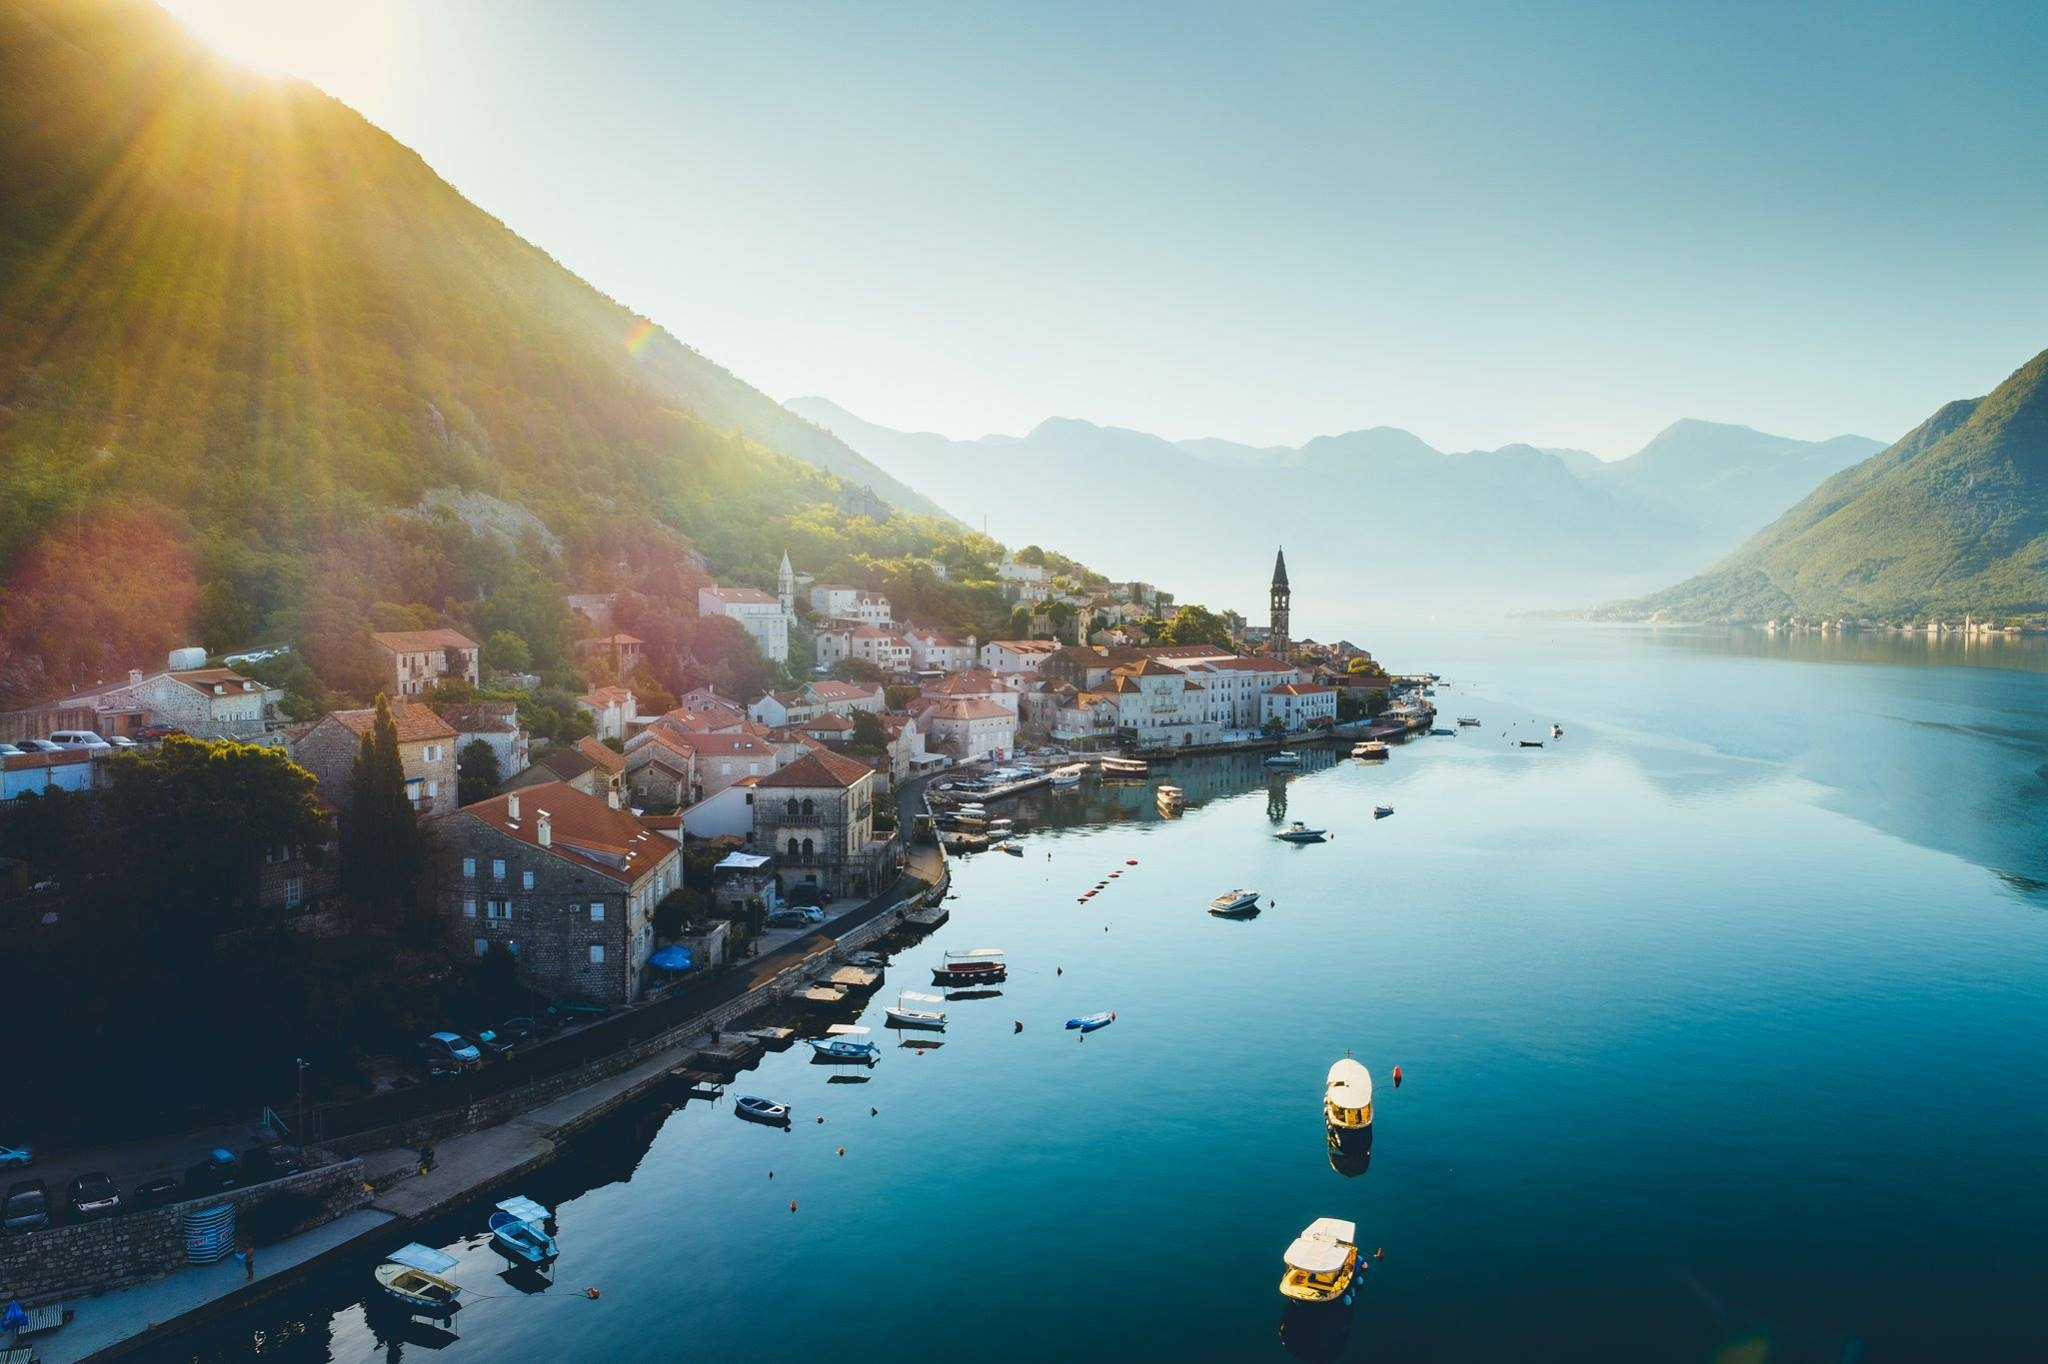 The town of Perast photographed from a drone at sunrise